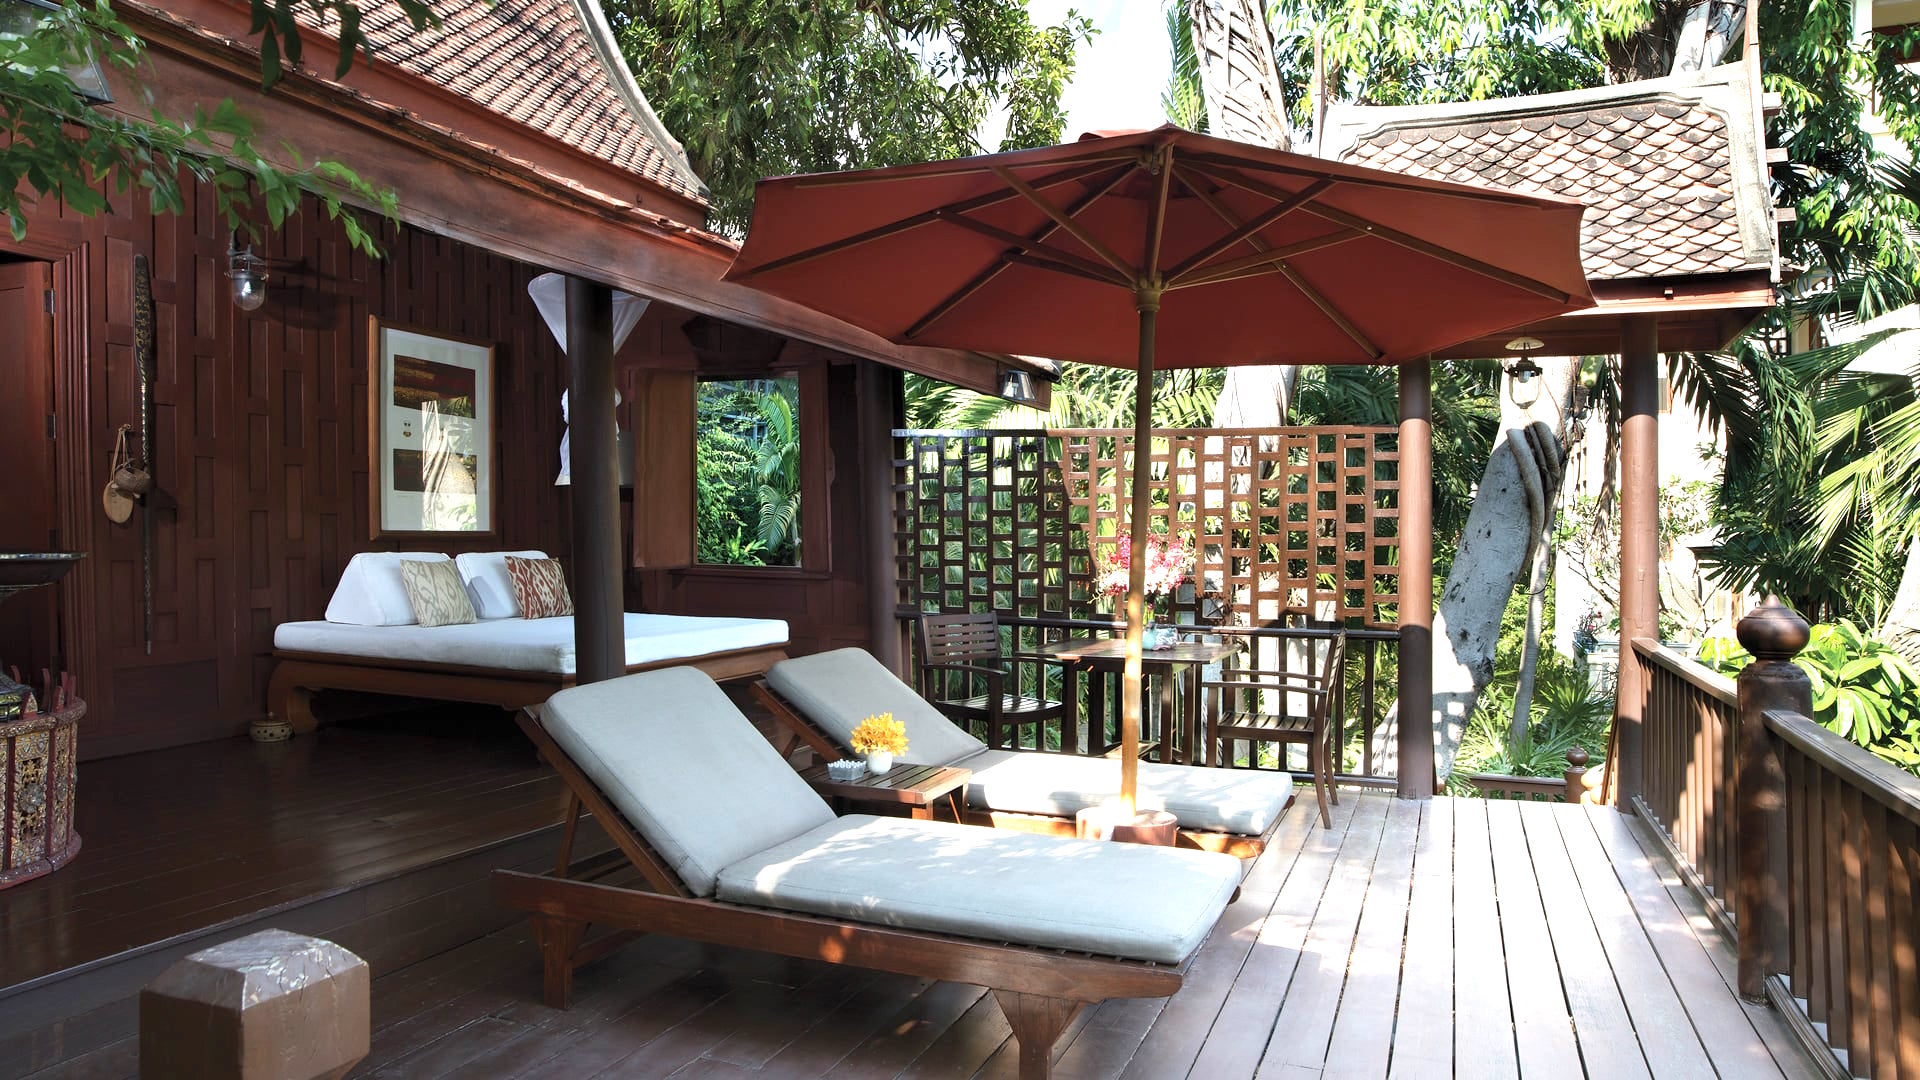 Family Friendly Stylish Hotels In Thailand Trvlbees